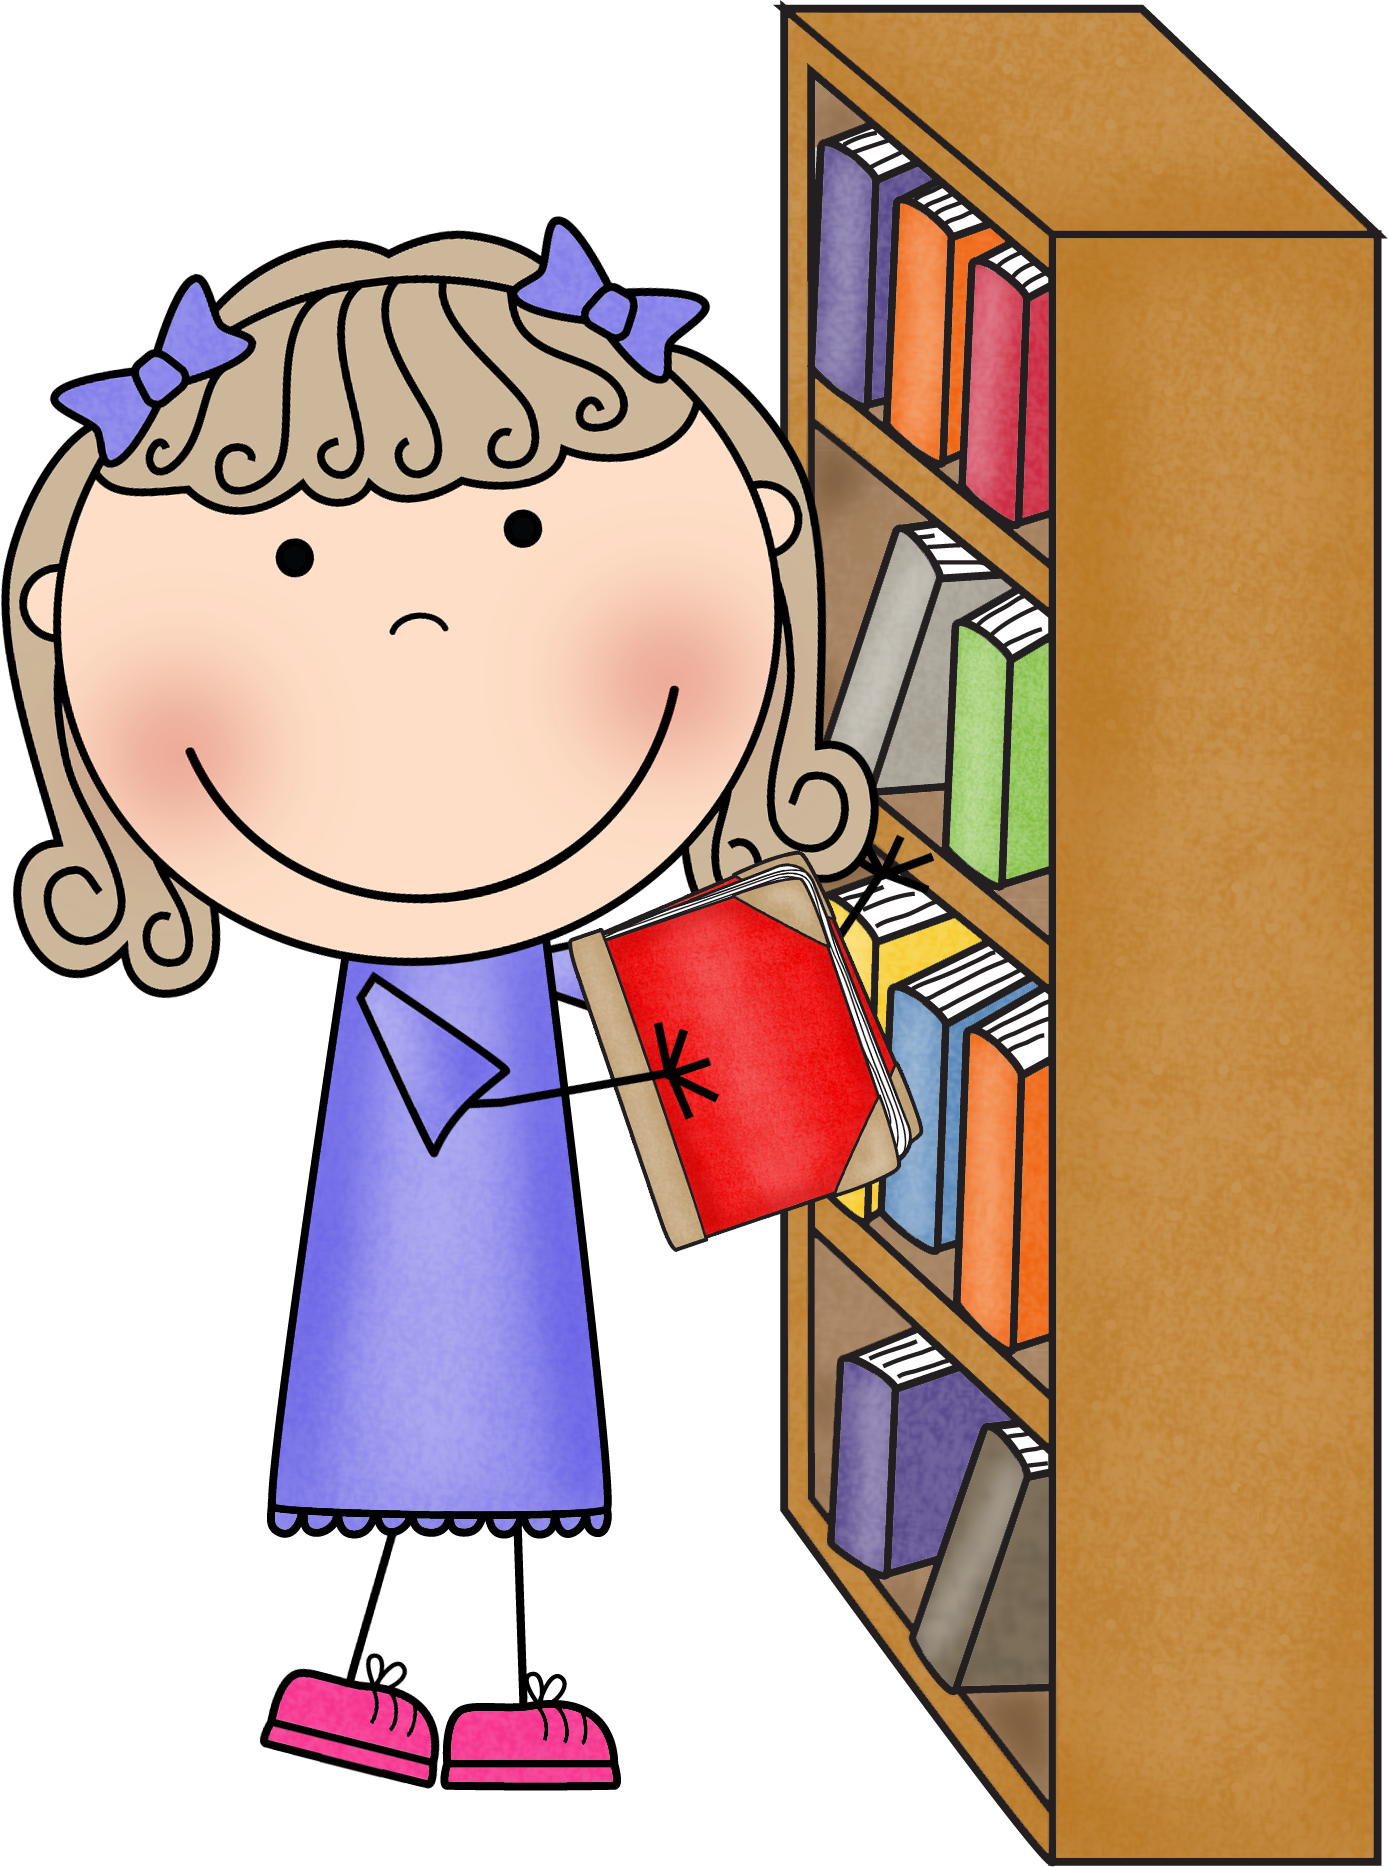 Computer clipart preschool. Pin by liliane moreira